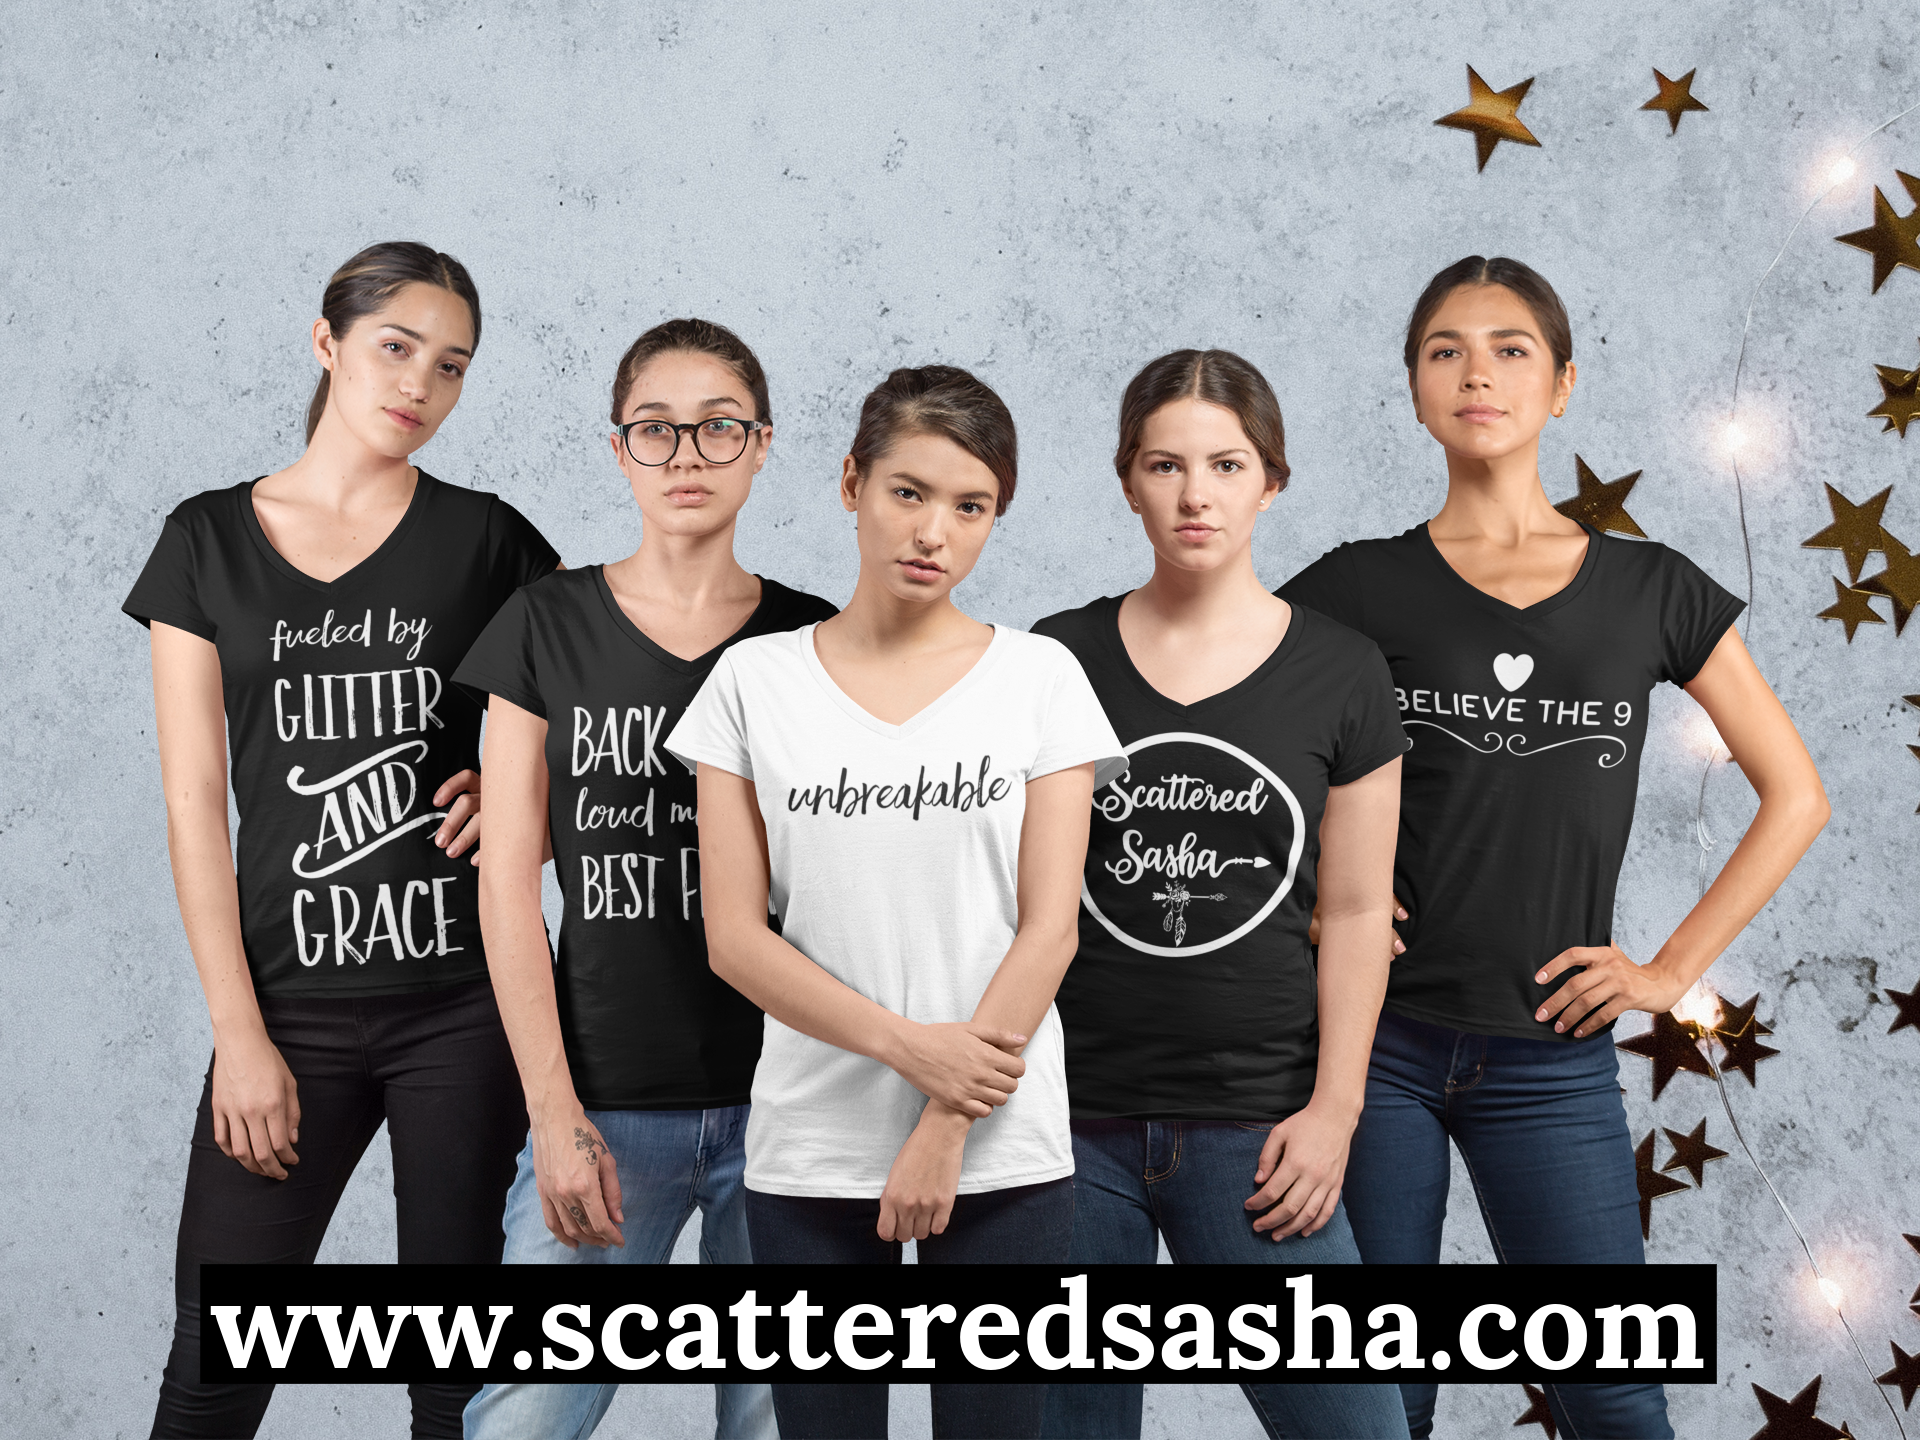 Promo-5 shirts on 5 young women